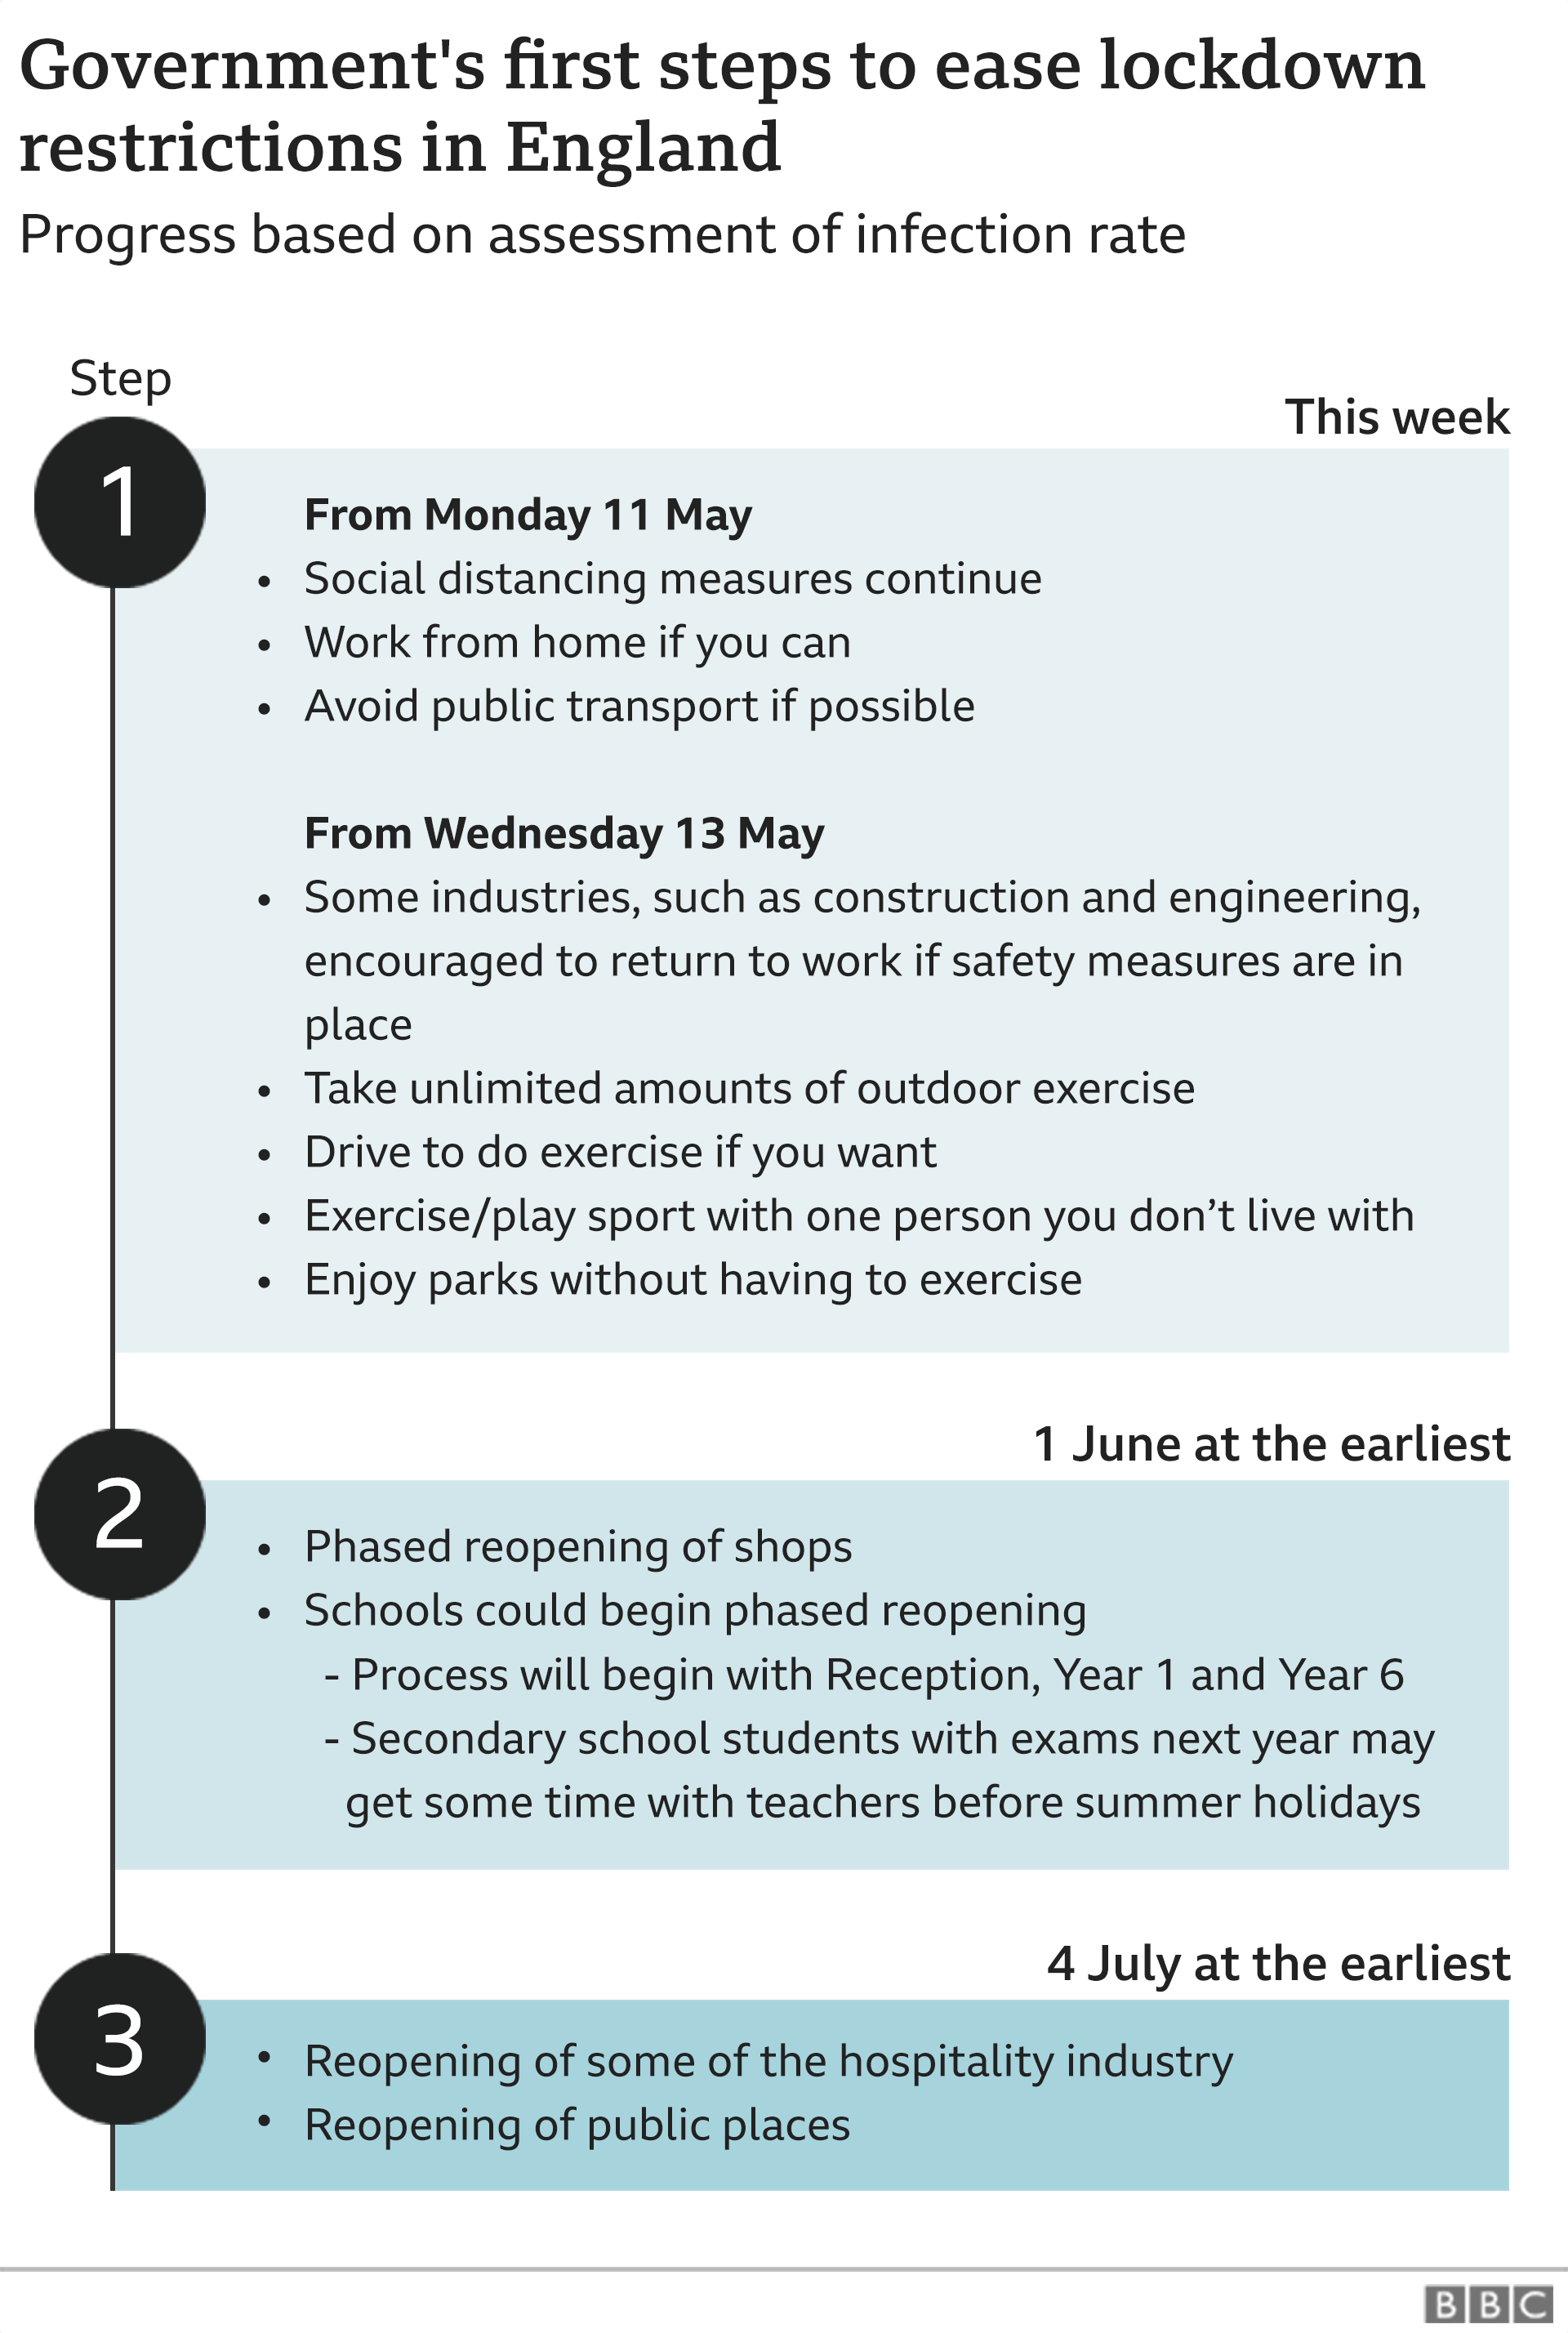 In step one, from Wednesday 13 May, workers who cannot work from home should travel to work if their workplace is open. The government also urges more vulnerable children to attend school if they are able to. In step two, no earlier than 1 June, nurseries and primary schools will begin a phased return beginning with early years, reception, and years one and six. Some businesses can reopen and sporting events will be able to take place behind closed doors. • In step three, no earlier than 4 July, more businesses will be able to open - although some, which are crowded by design, will not be able to open. The aim is to reopen businesses such as hairdressers and beauty salons.